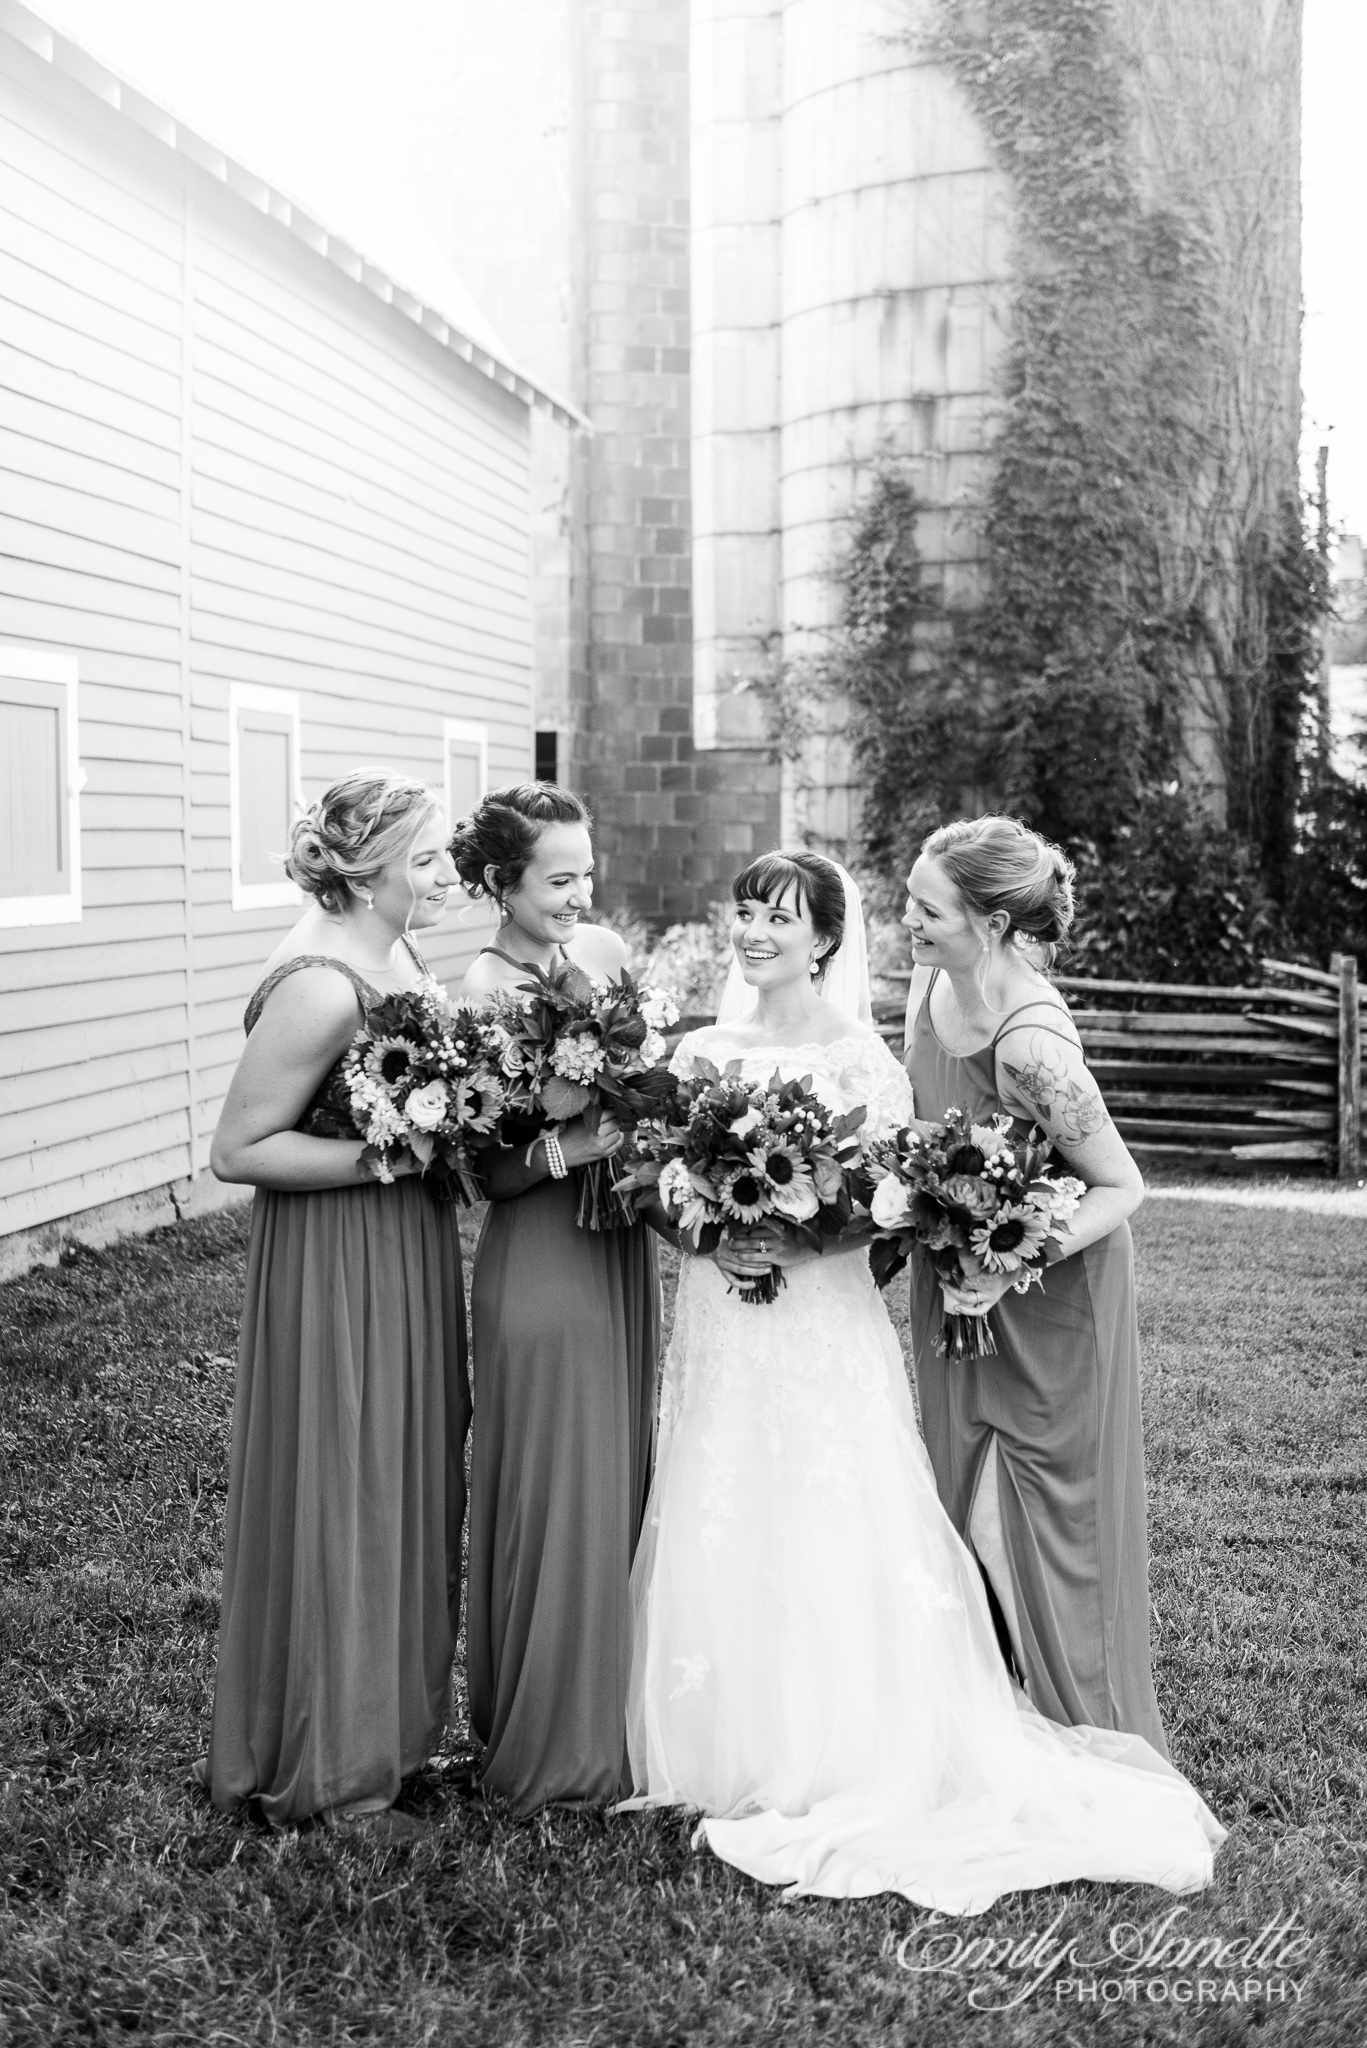 A bridal party poses for a photo in blue bridesmaids dresses and holding colorful fall bouquets outside a silo during a country wedding at Amber Grove near Richmond, Virginia